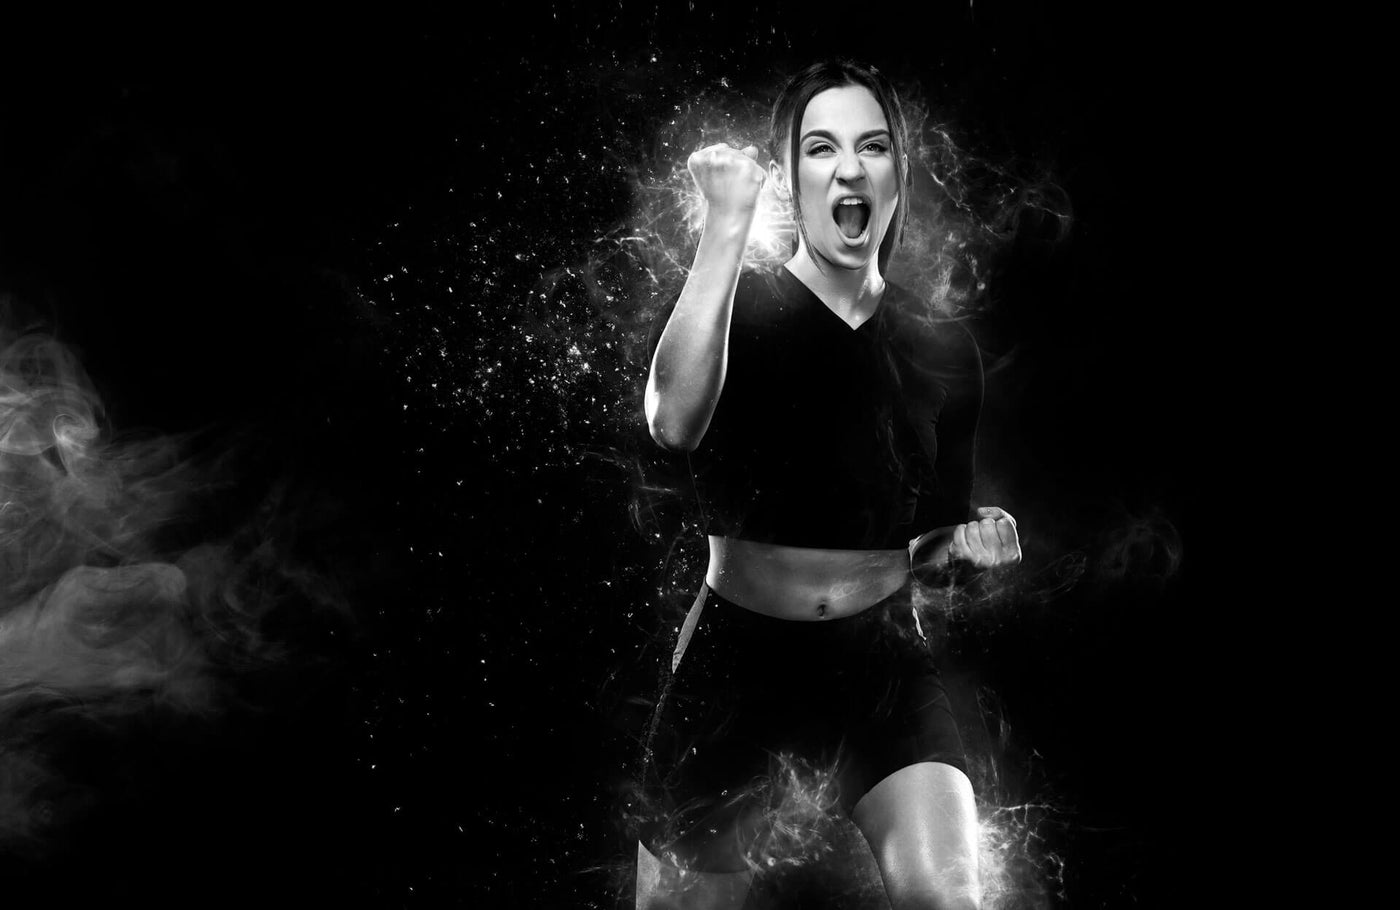 Fitness and sport motivation.. Strong and fit athletic, woman sprinter or runner, running on black background in the fire wearing sportswear.